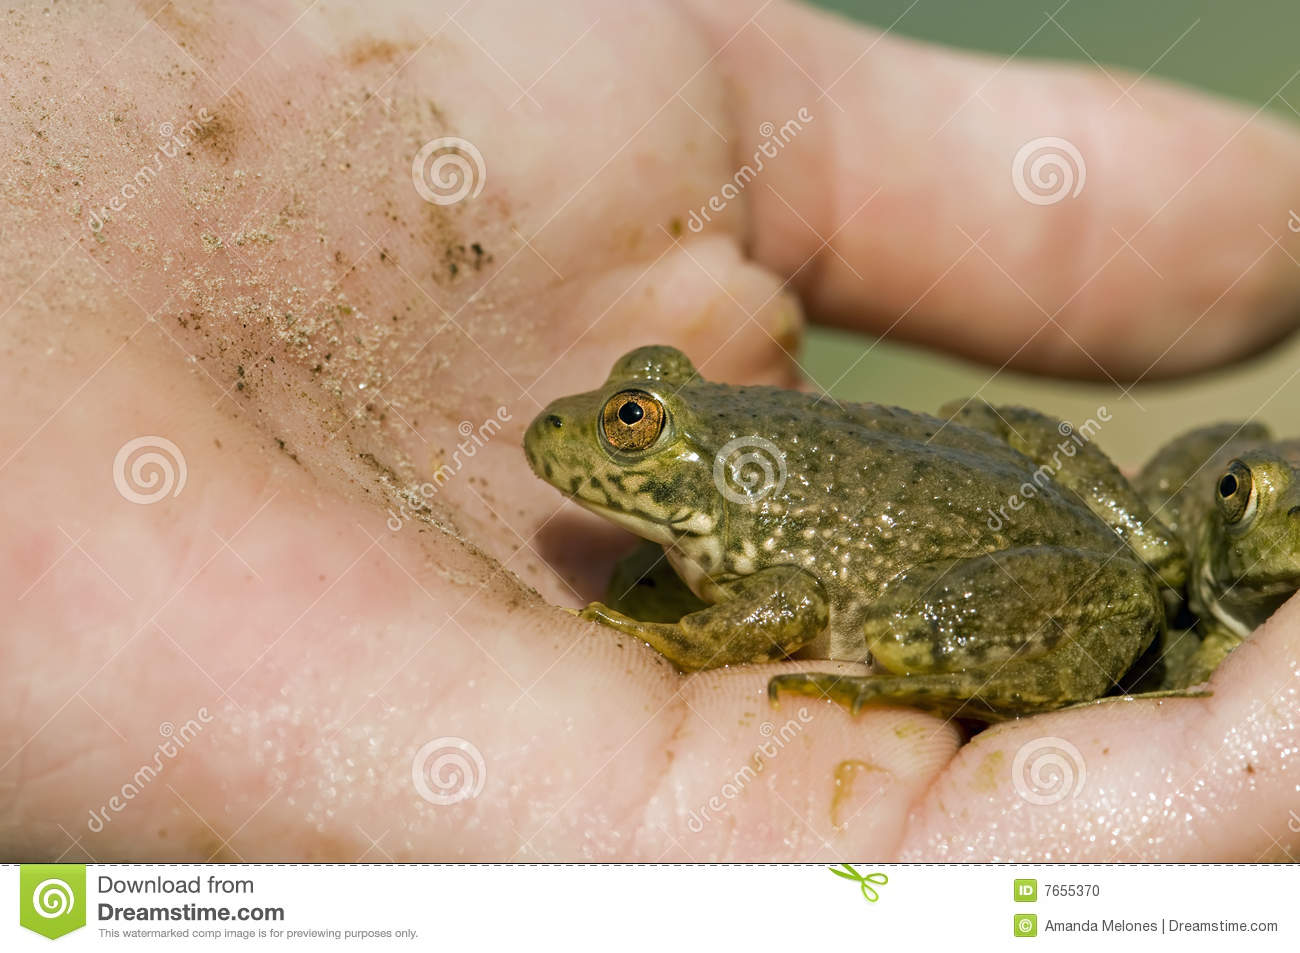 Frogs in hand